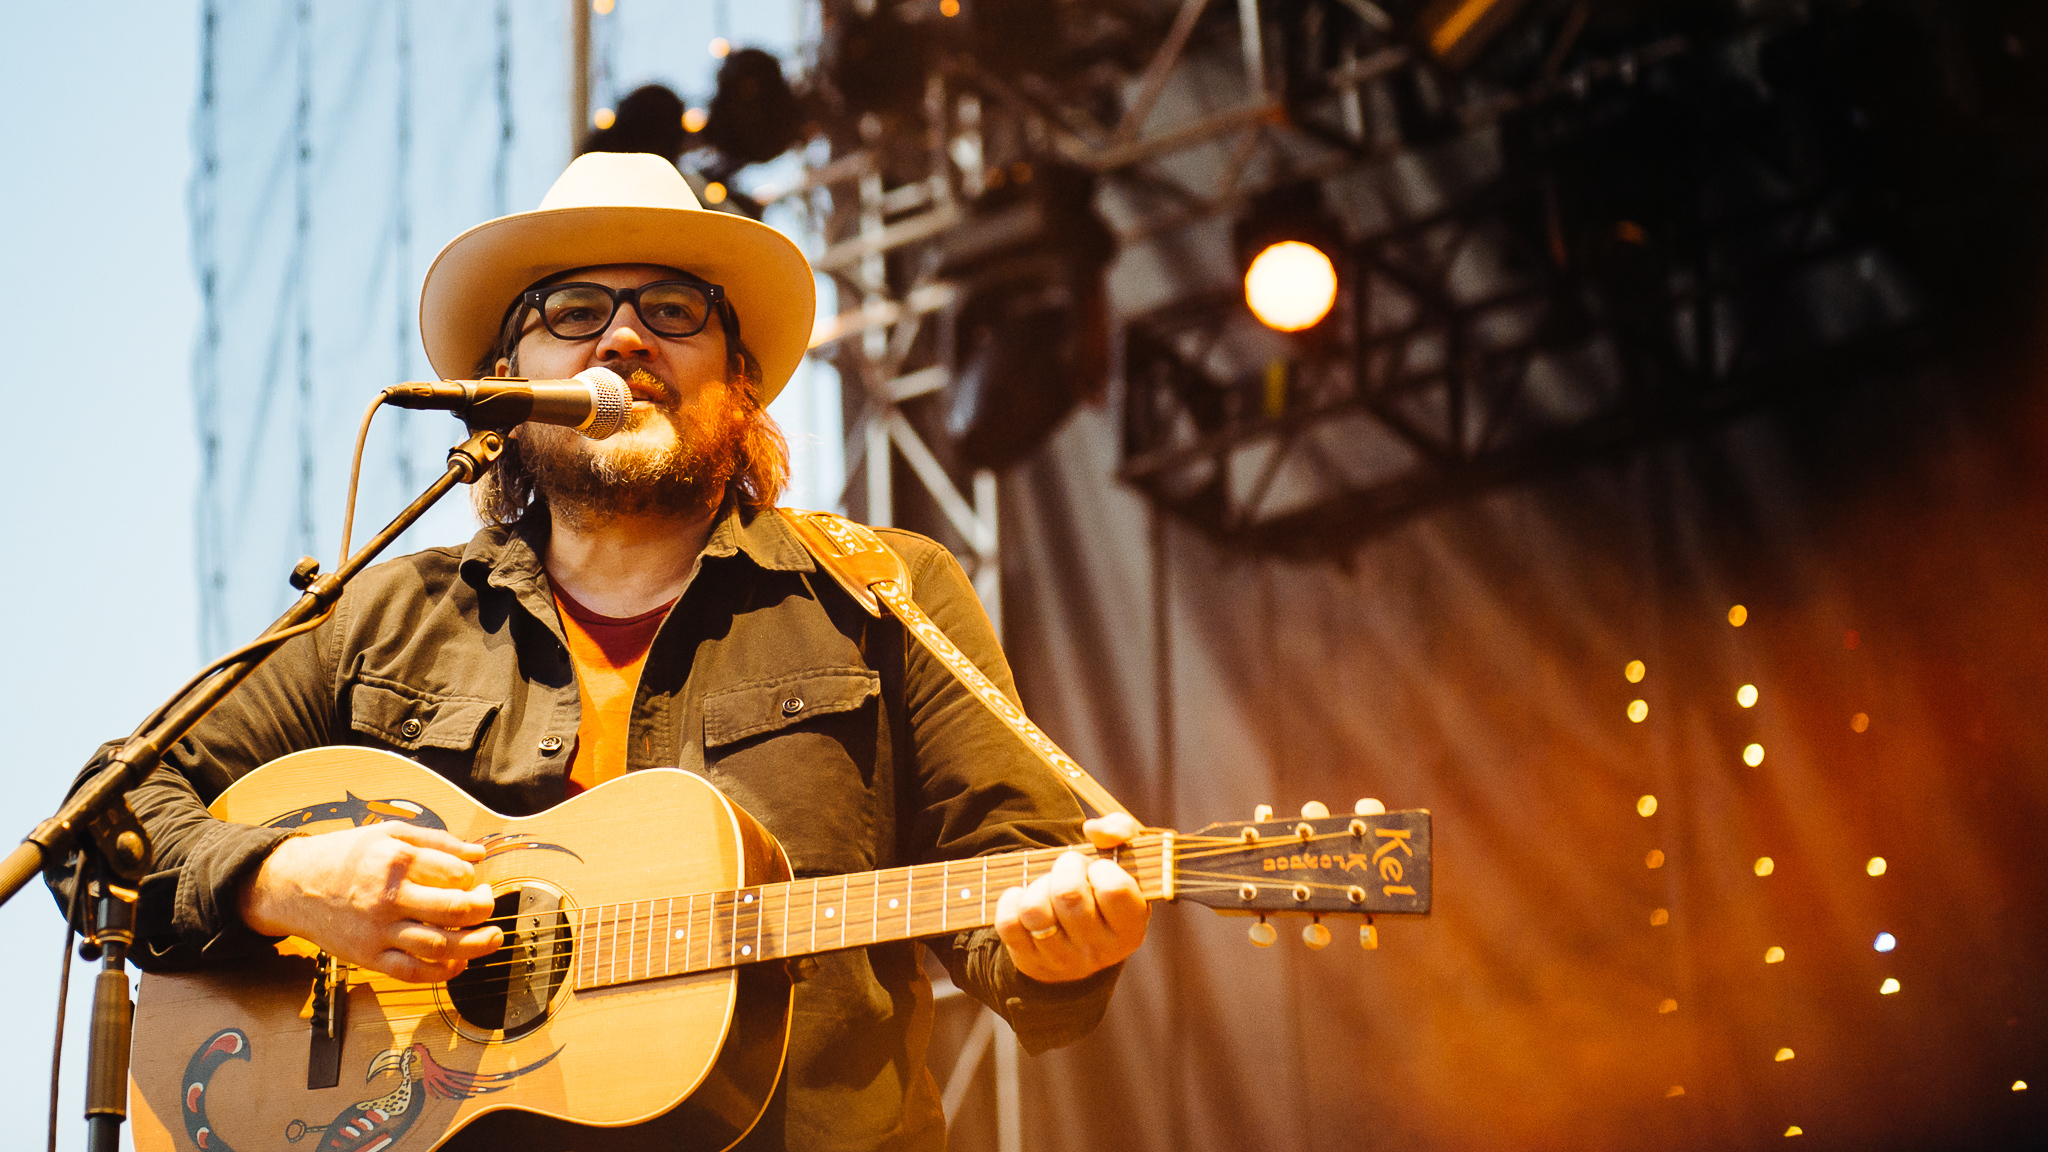 Wilco at Pitchfork Music Festival